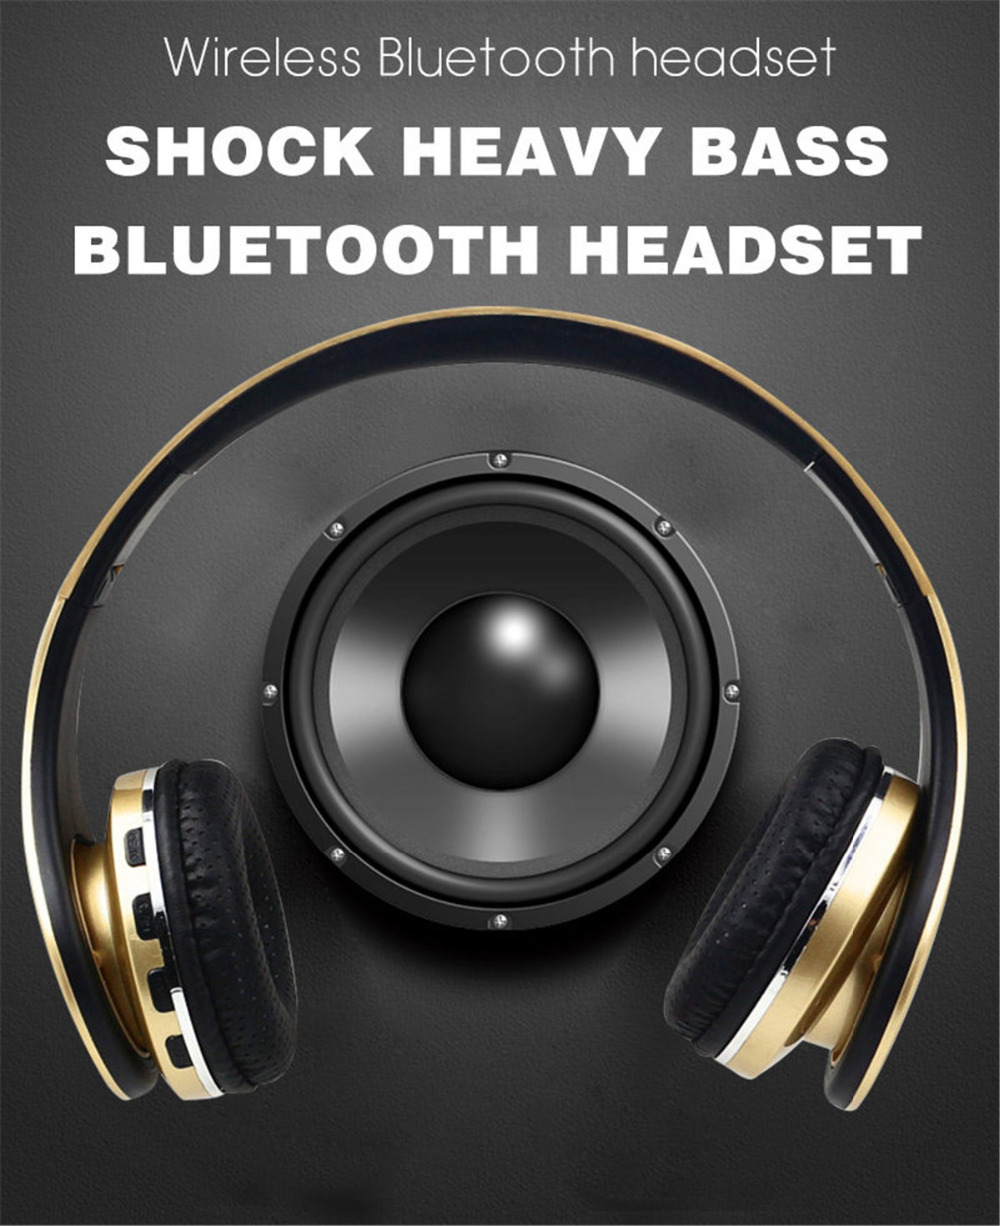 helmet headset helmet bluetooth headset with Mic Support LED Light TF Card FM Radio for iPhone Samsung Tablet Stereo Headsets